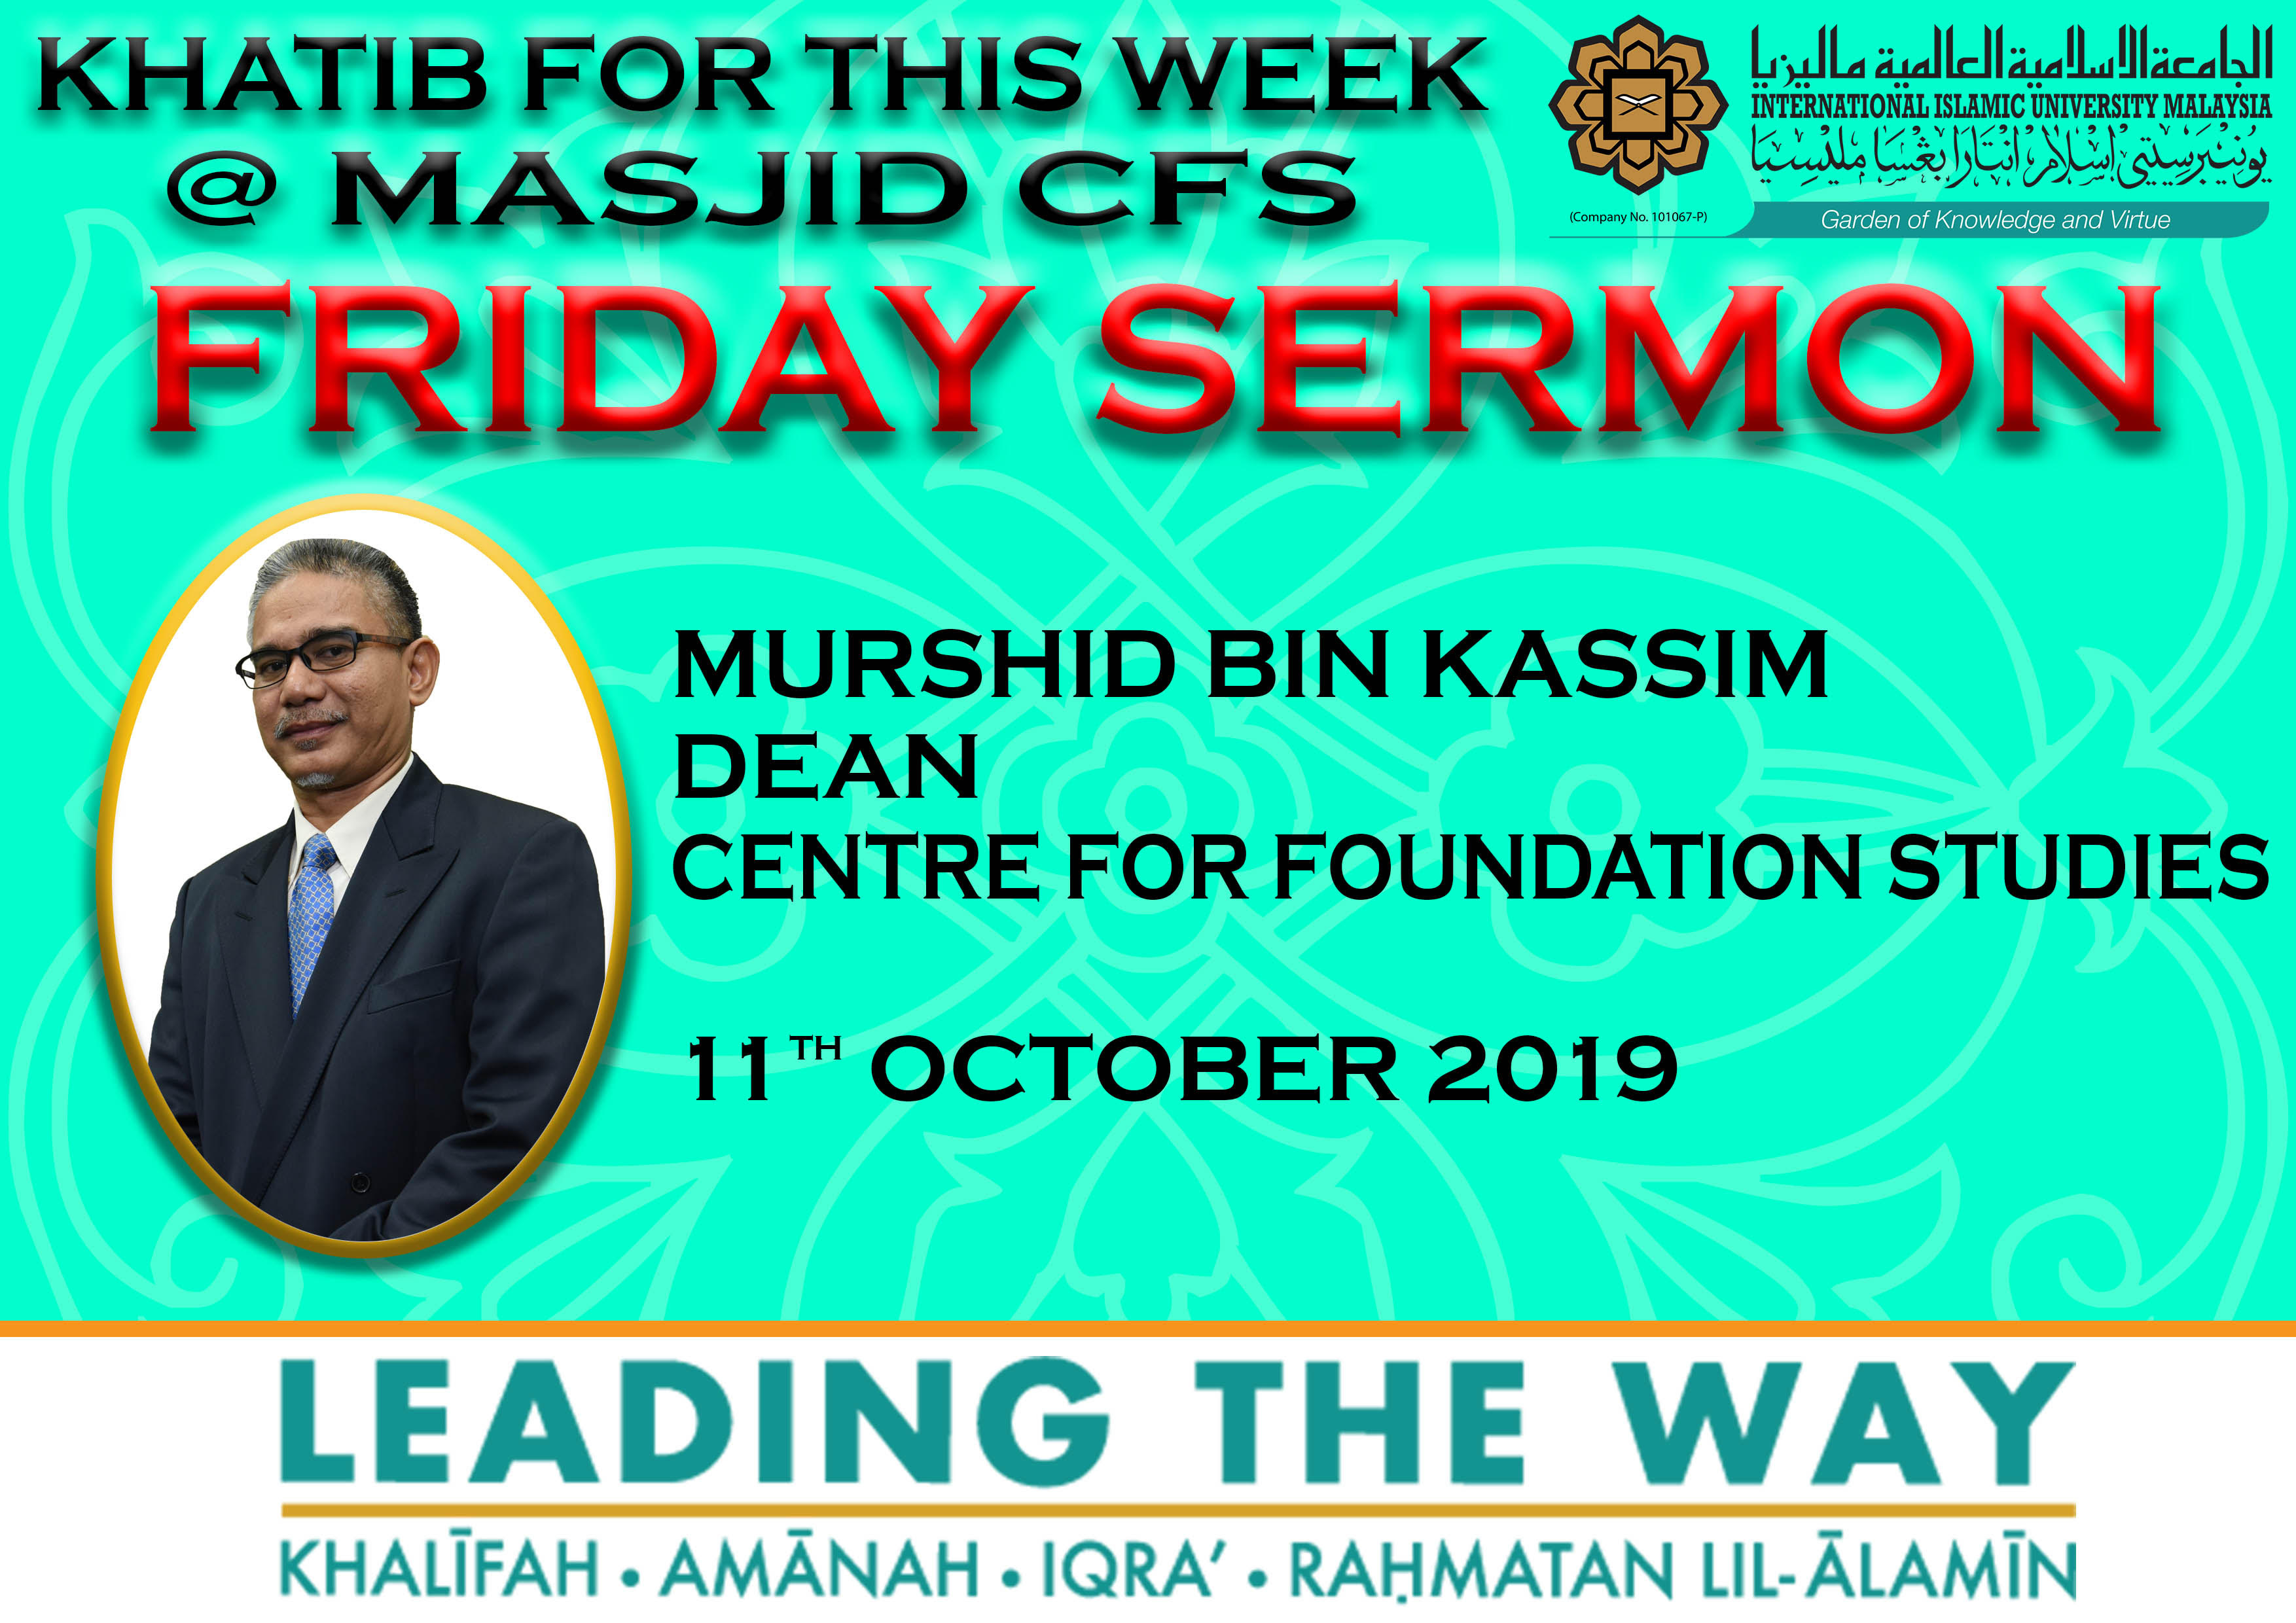 KHATIB THIS WEEK –  11th OCTOBER 2019 (FRIDAY) MASJID CFS IIUM, GAMBANG CAMPUS